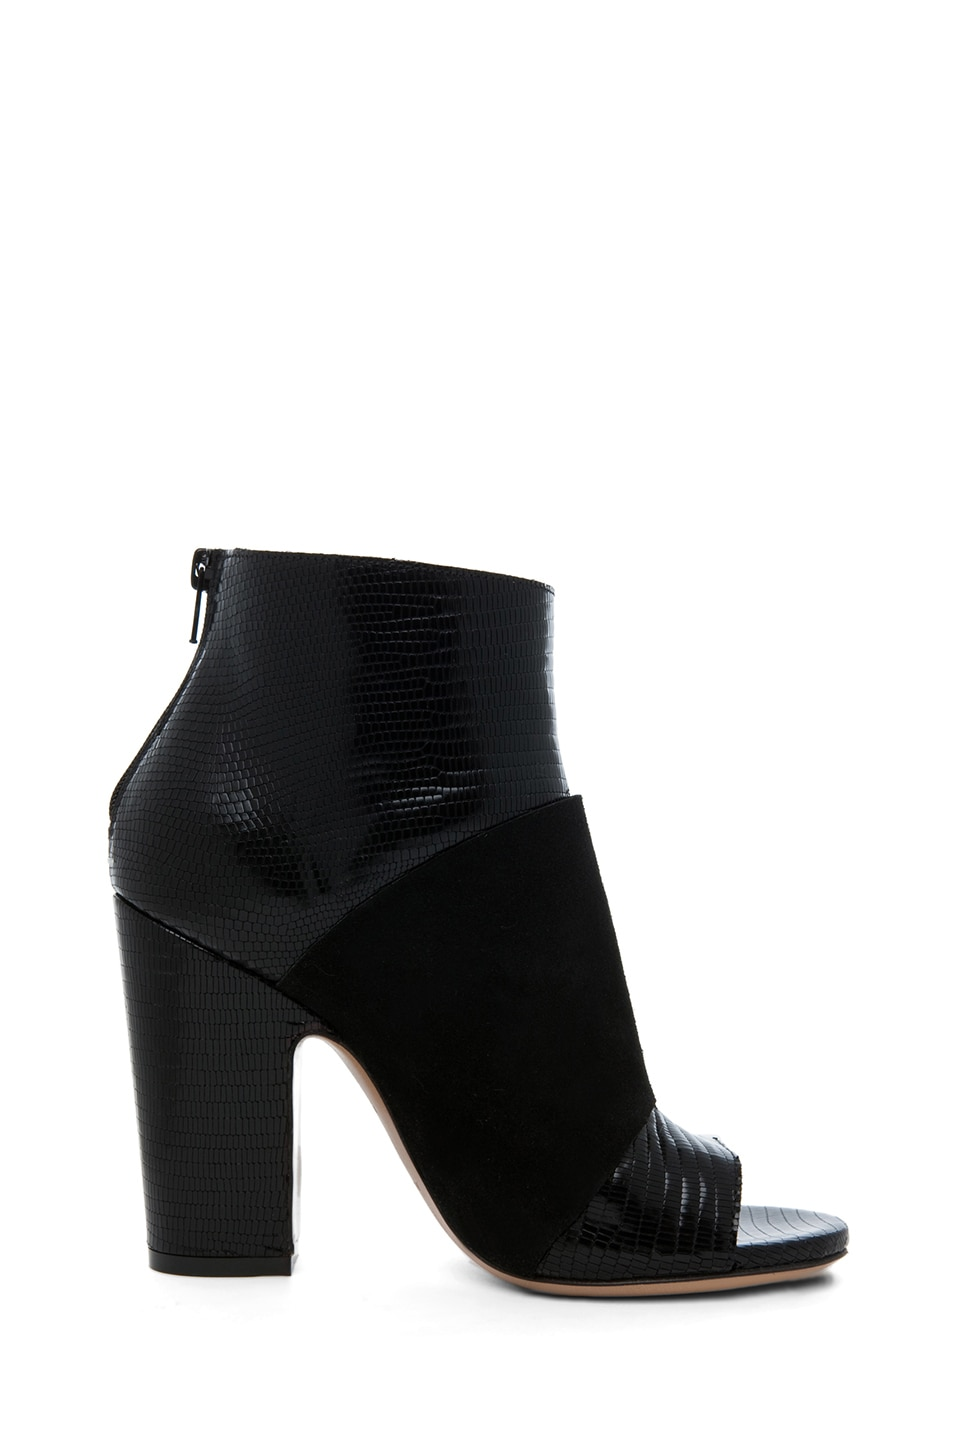 Image 5 of Maison Margiela Pliage Bootie in Black